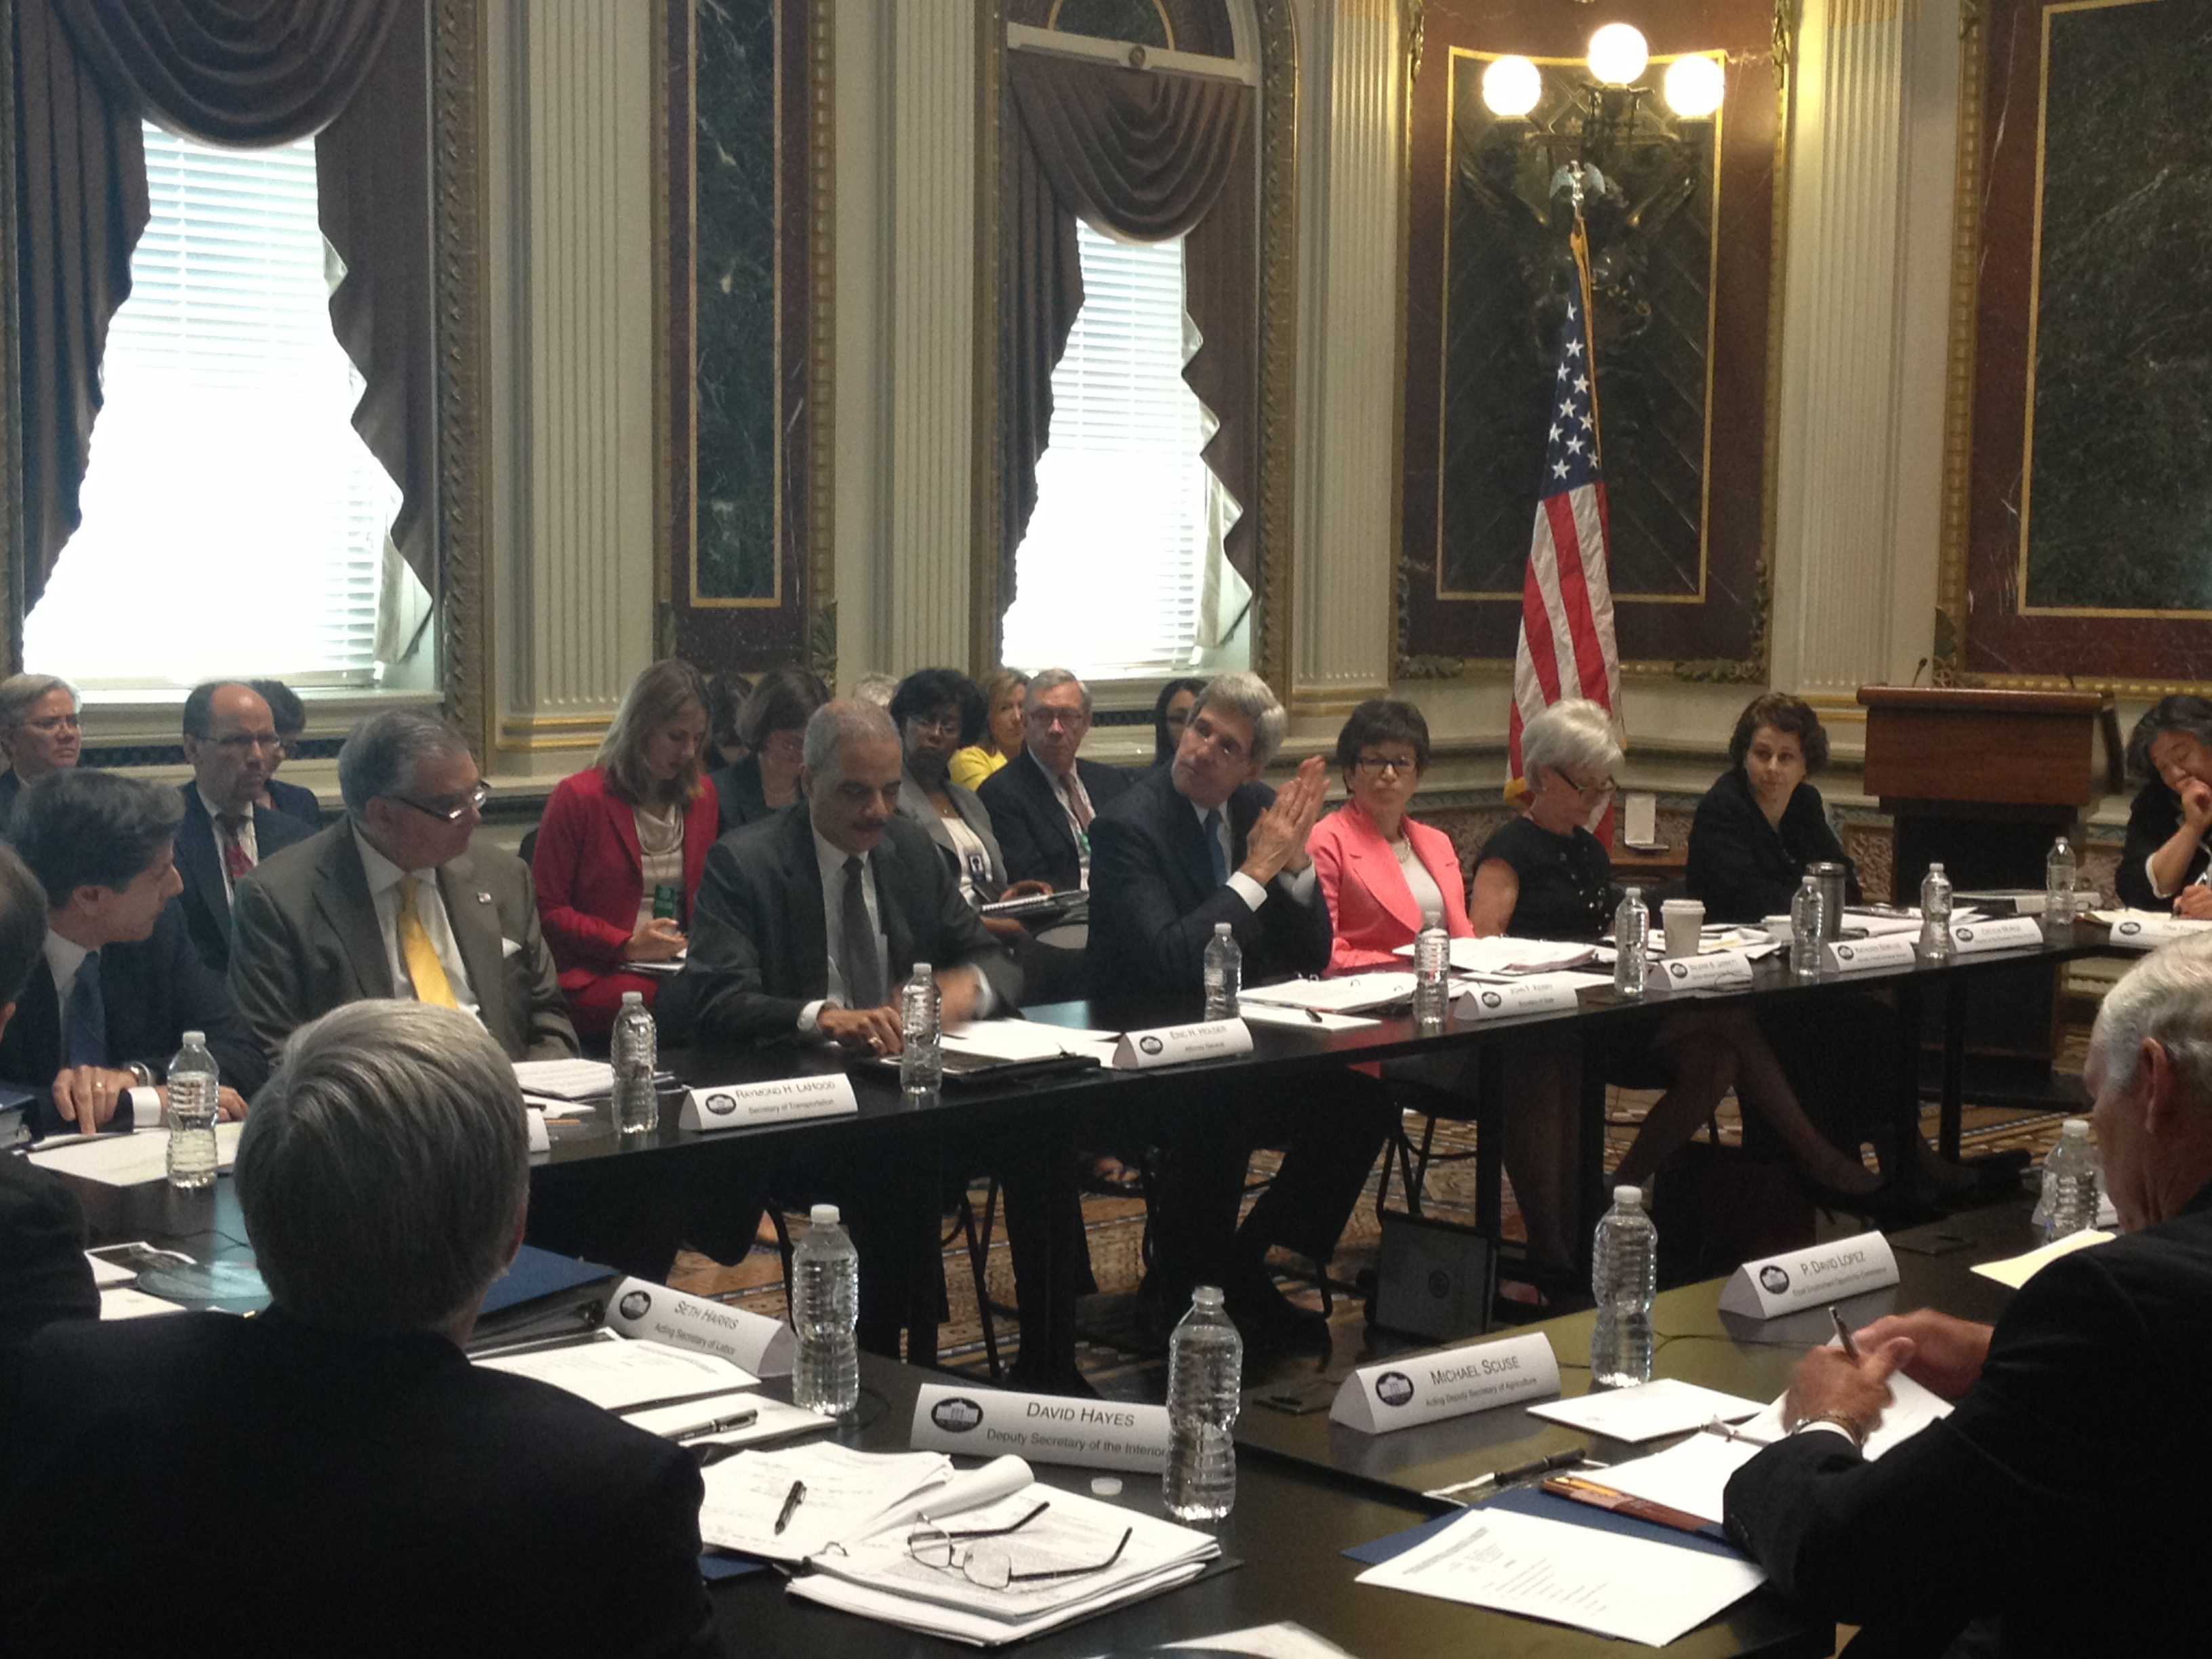 Meeting of President's Interagency Task Force to Monitor and Combat Trafficking in Persons